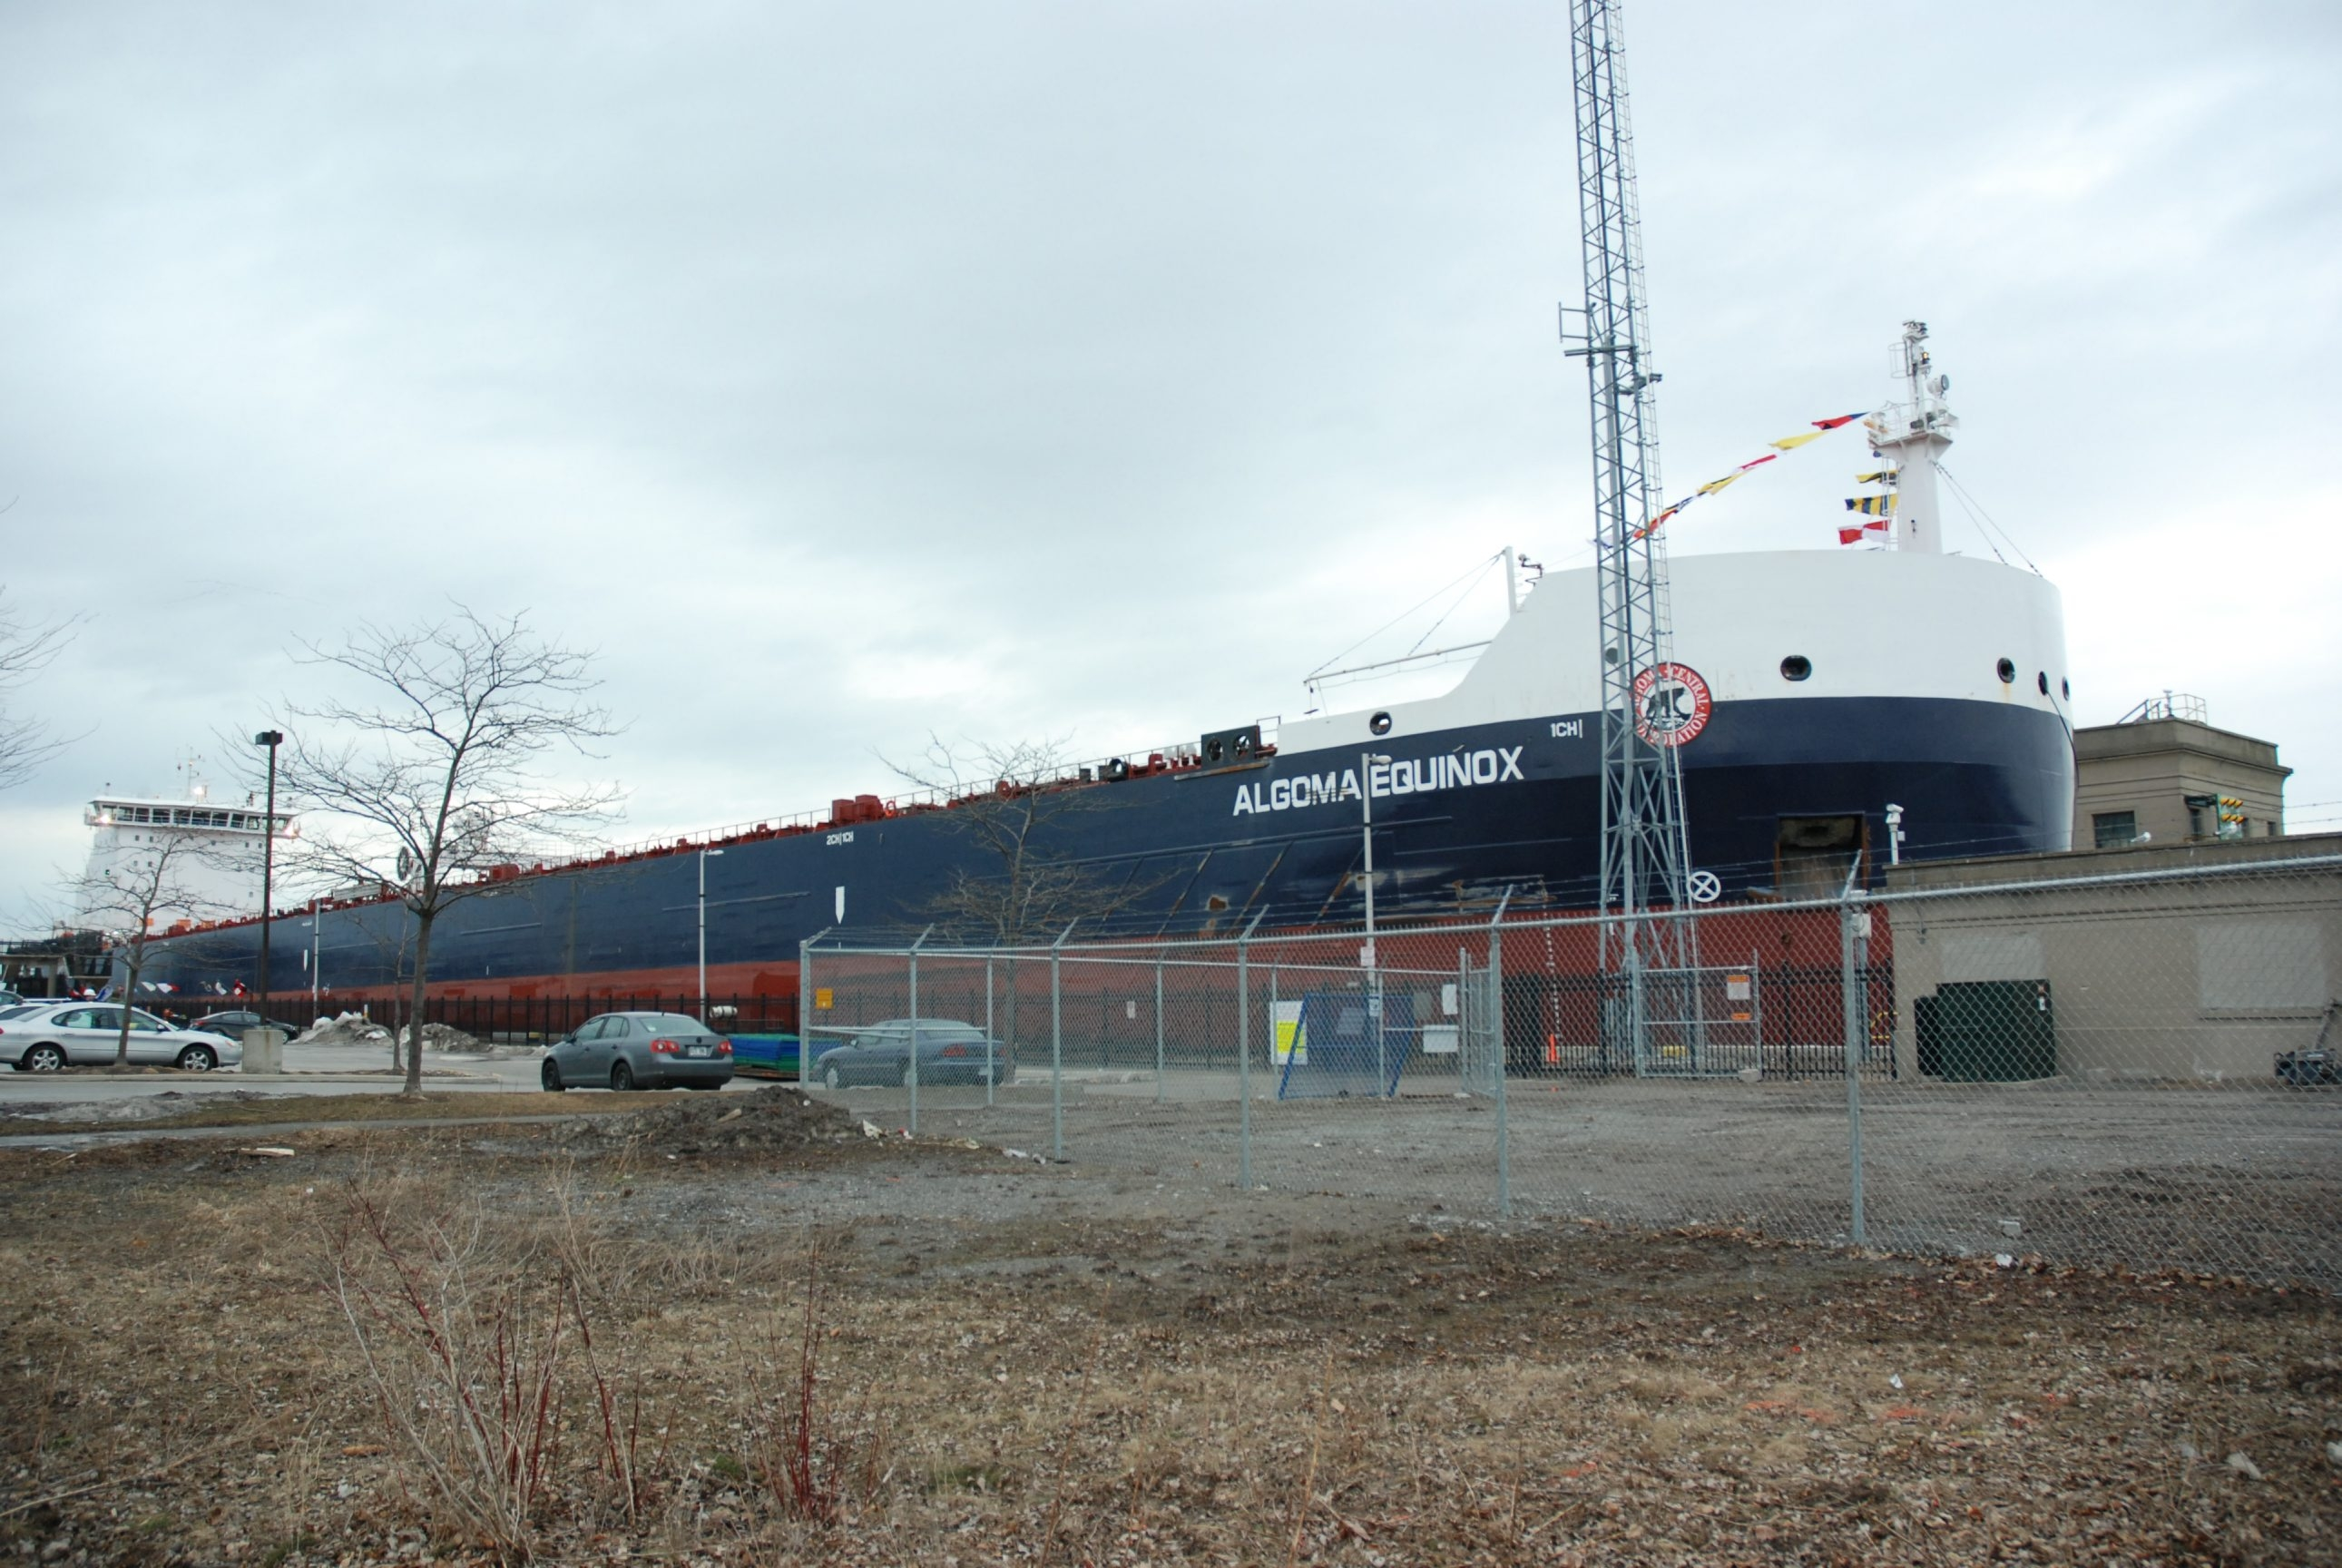 The Algoma Equinox arrives at Welland Canal Lock No. 3 in St. Cathariens, Ont., on  Friday. The first upbound vessel of the season had to remain in place because the ice in the lakes is making navigation impossible at this time.